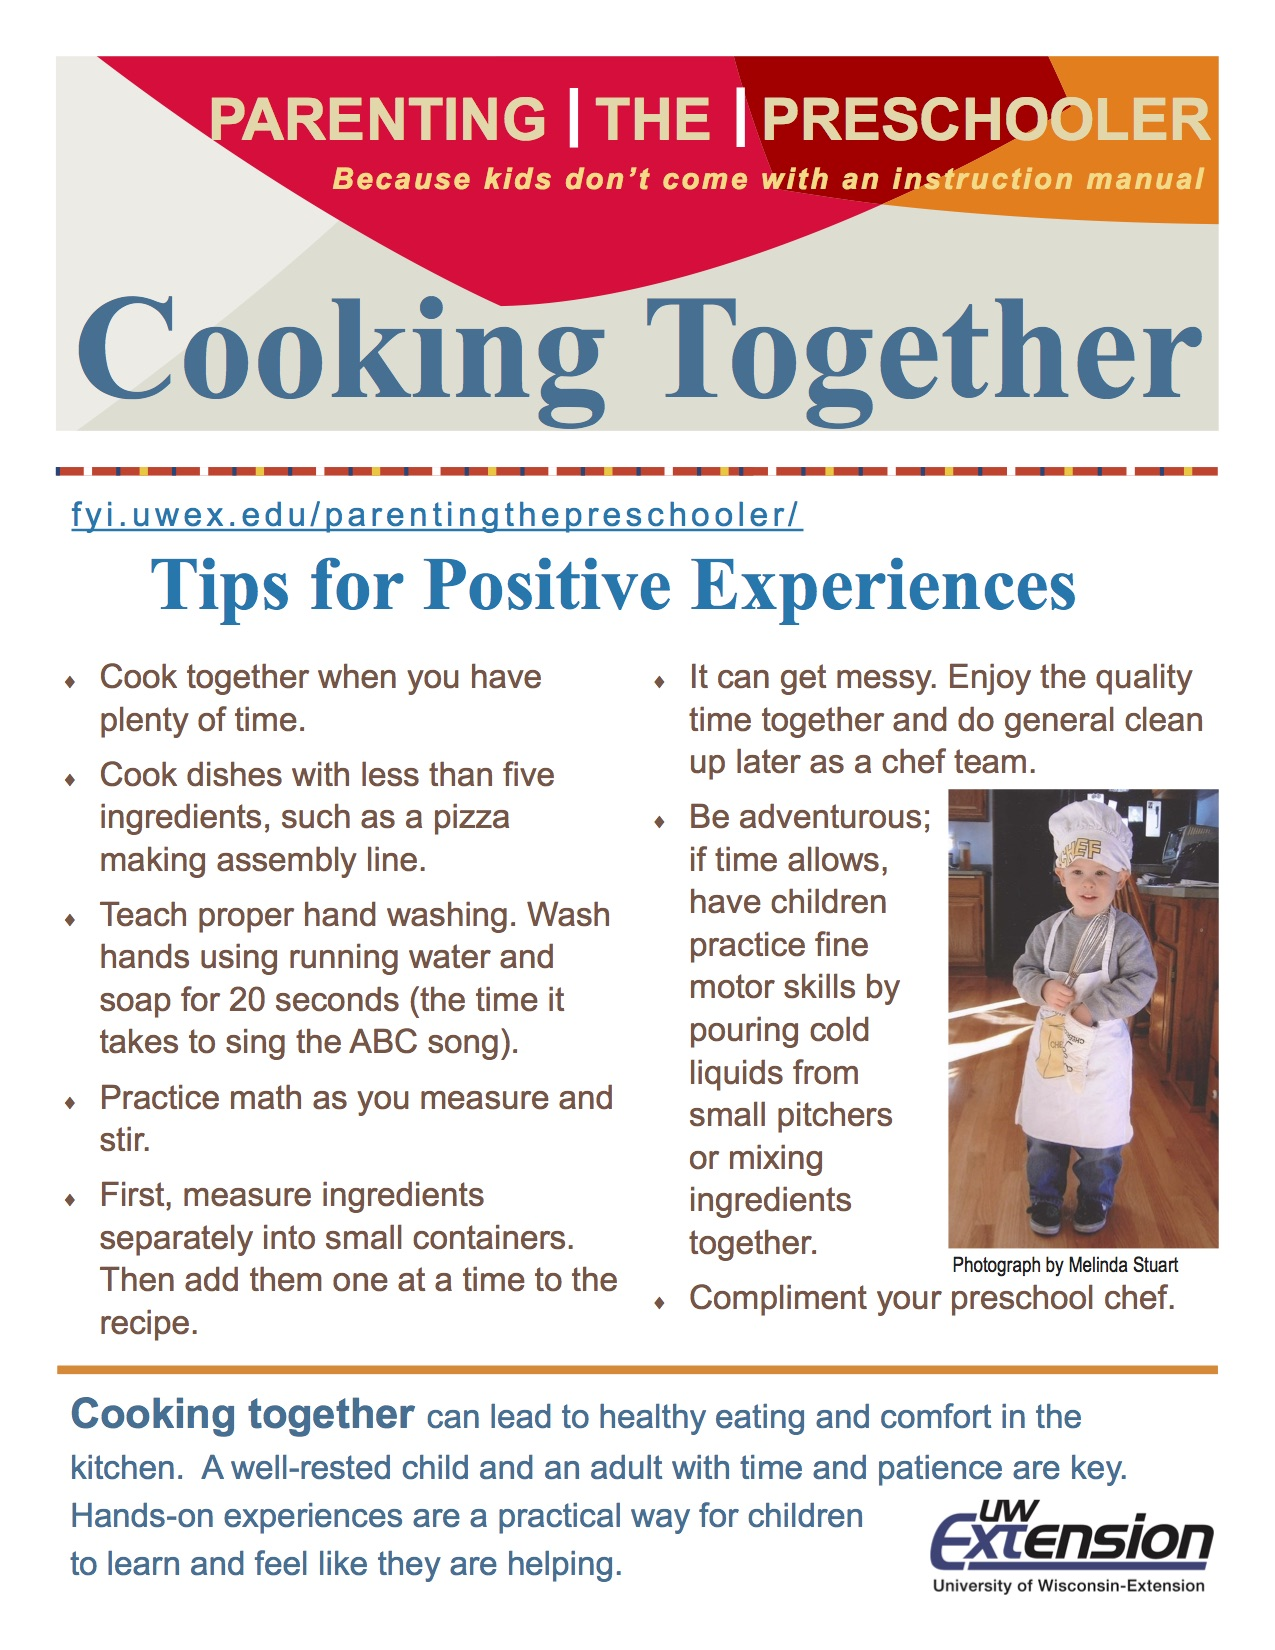 PtP-Cooking-Together